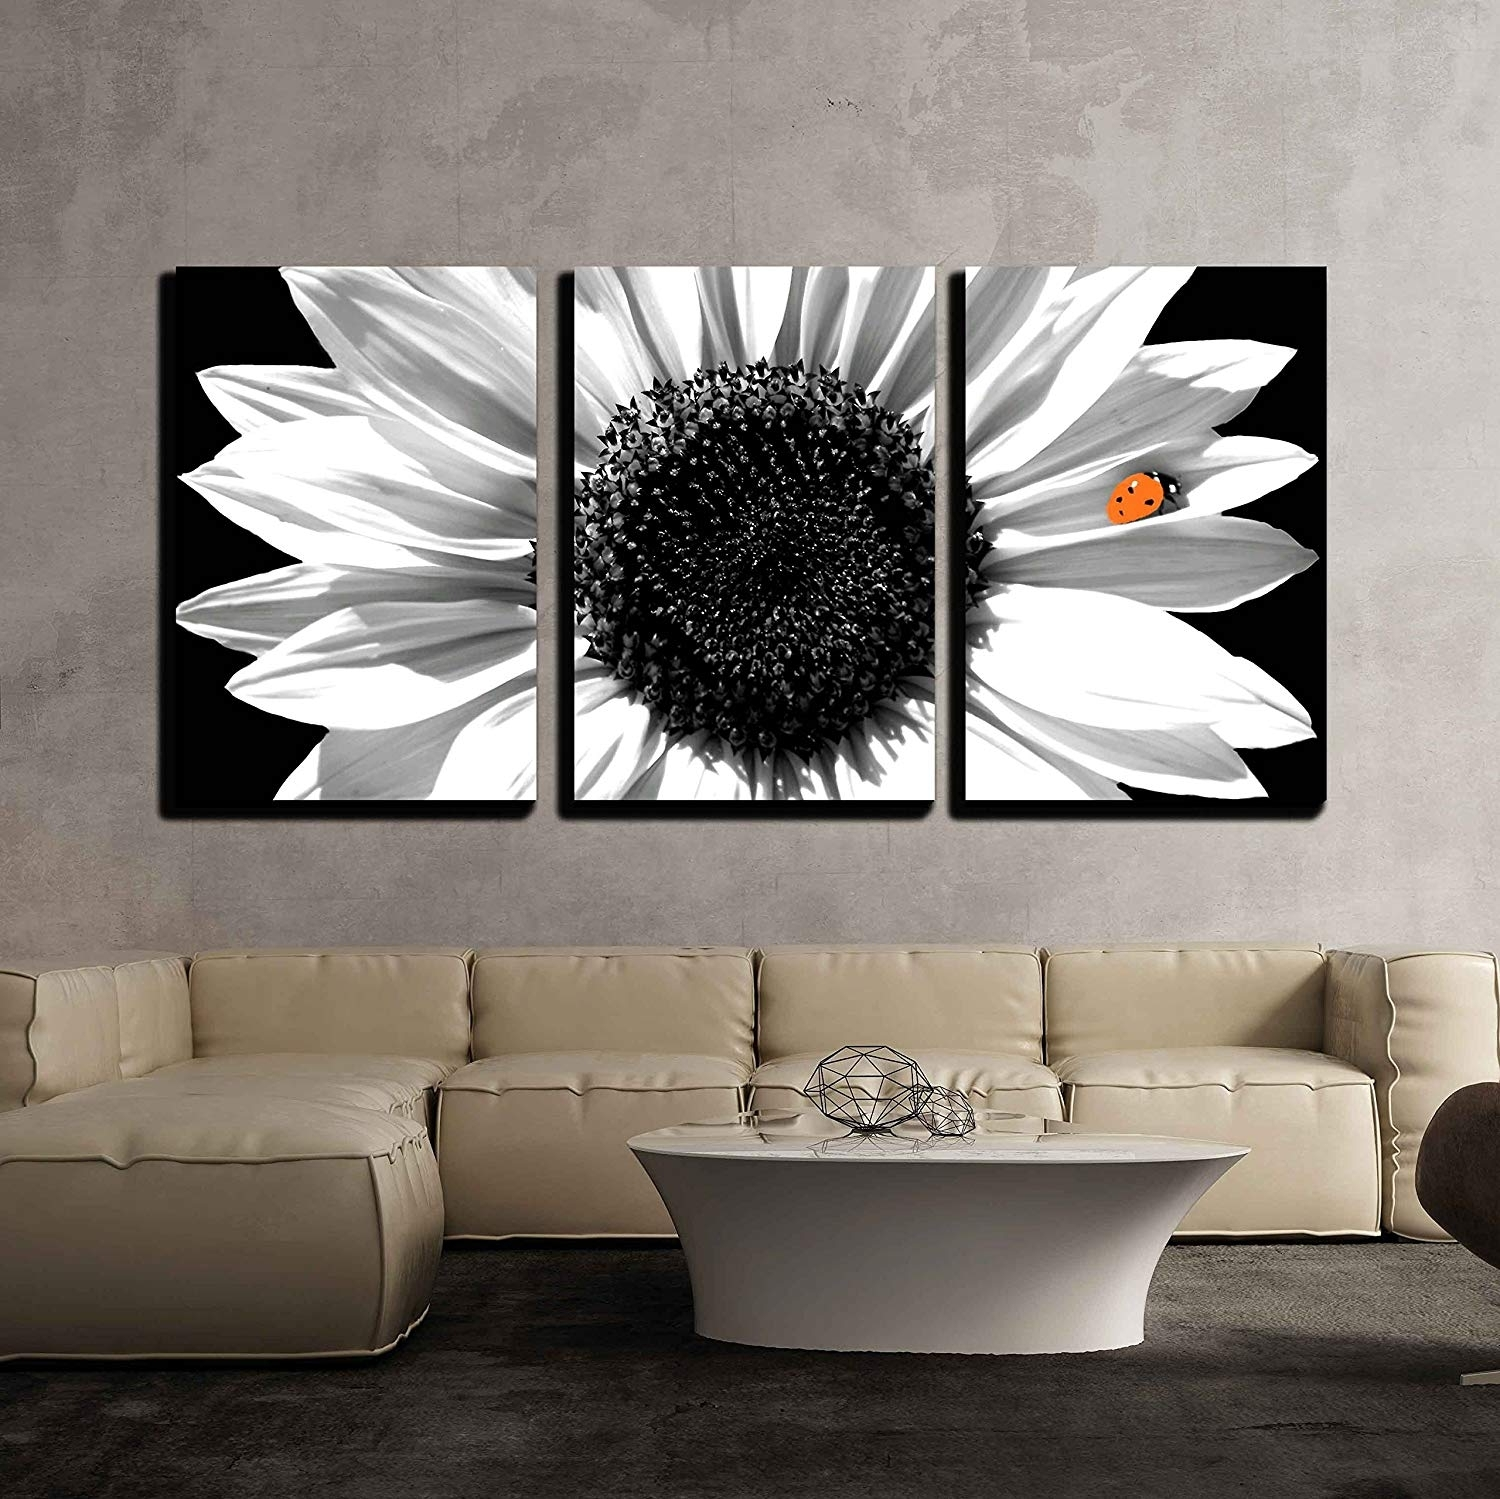 Sunflower In Black And White Wall Decor X3 Panels – Canvas Art | Wall26 Within Wall Canvas Art (View 5 of 20)